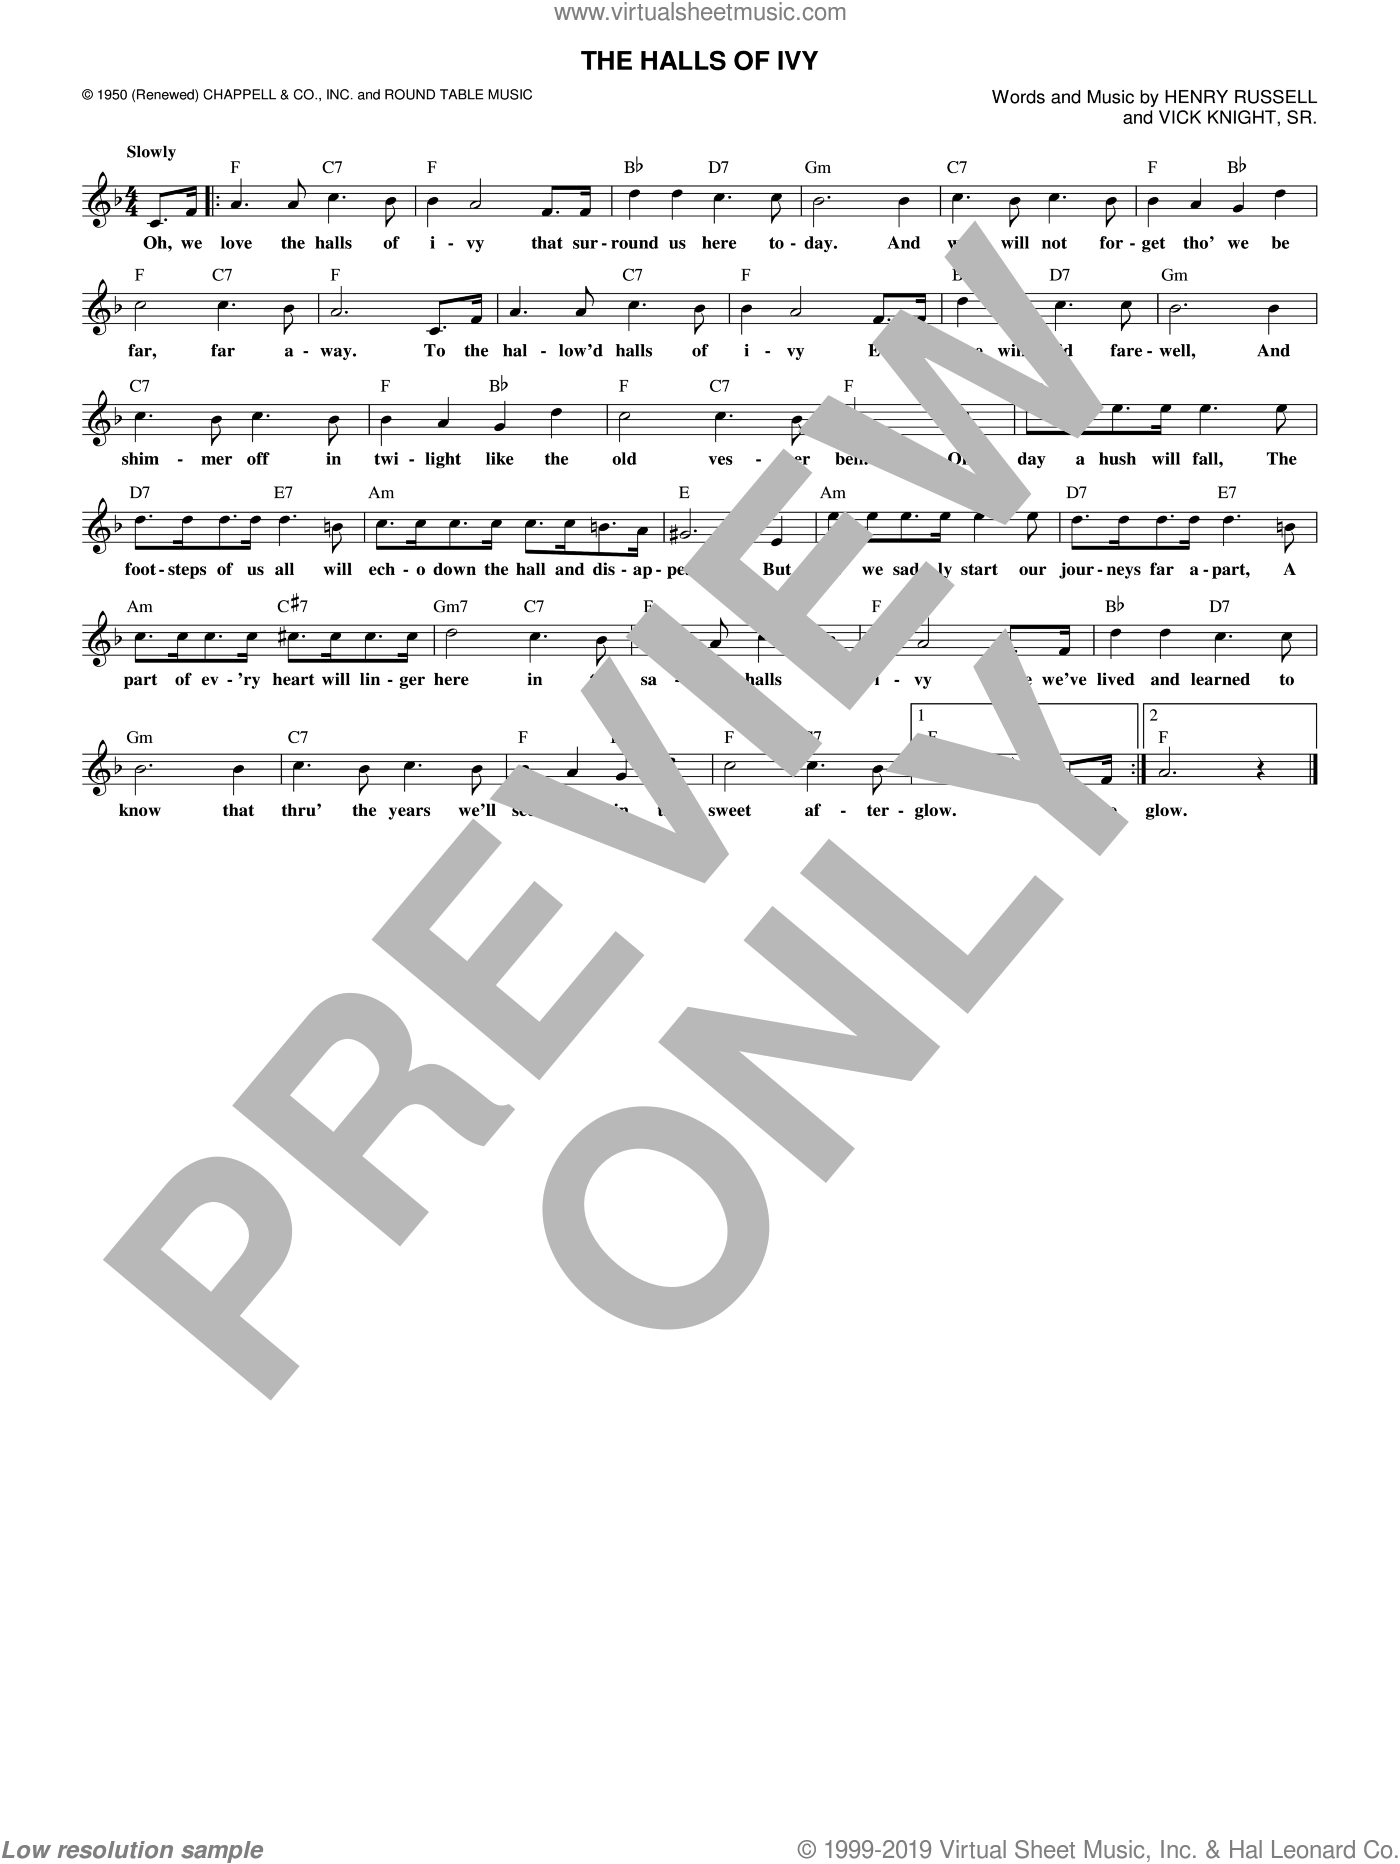 The Halls Of Ivy sheet music for voice and other instruments (fake book) by Henry Russell and Vick Knight, Sr., intermediate skill level